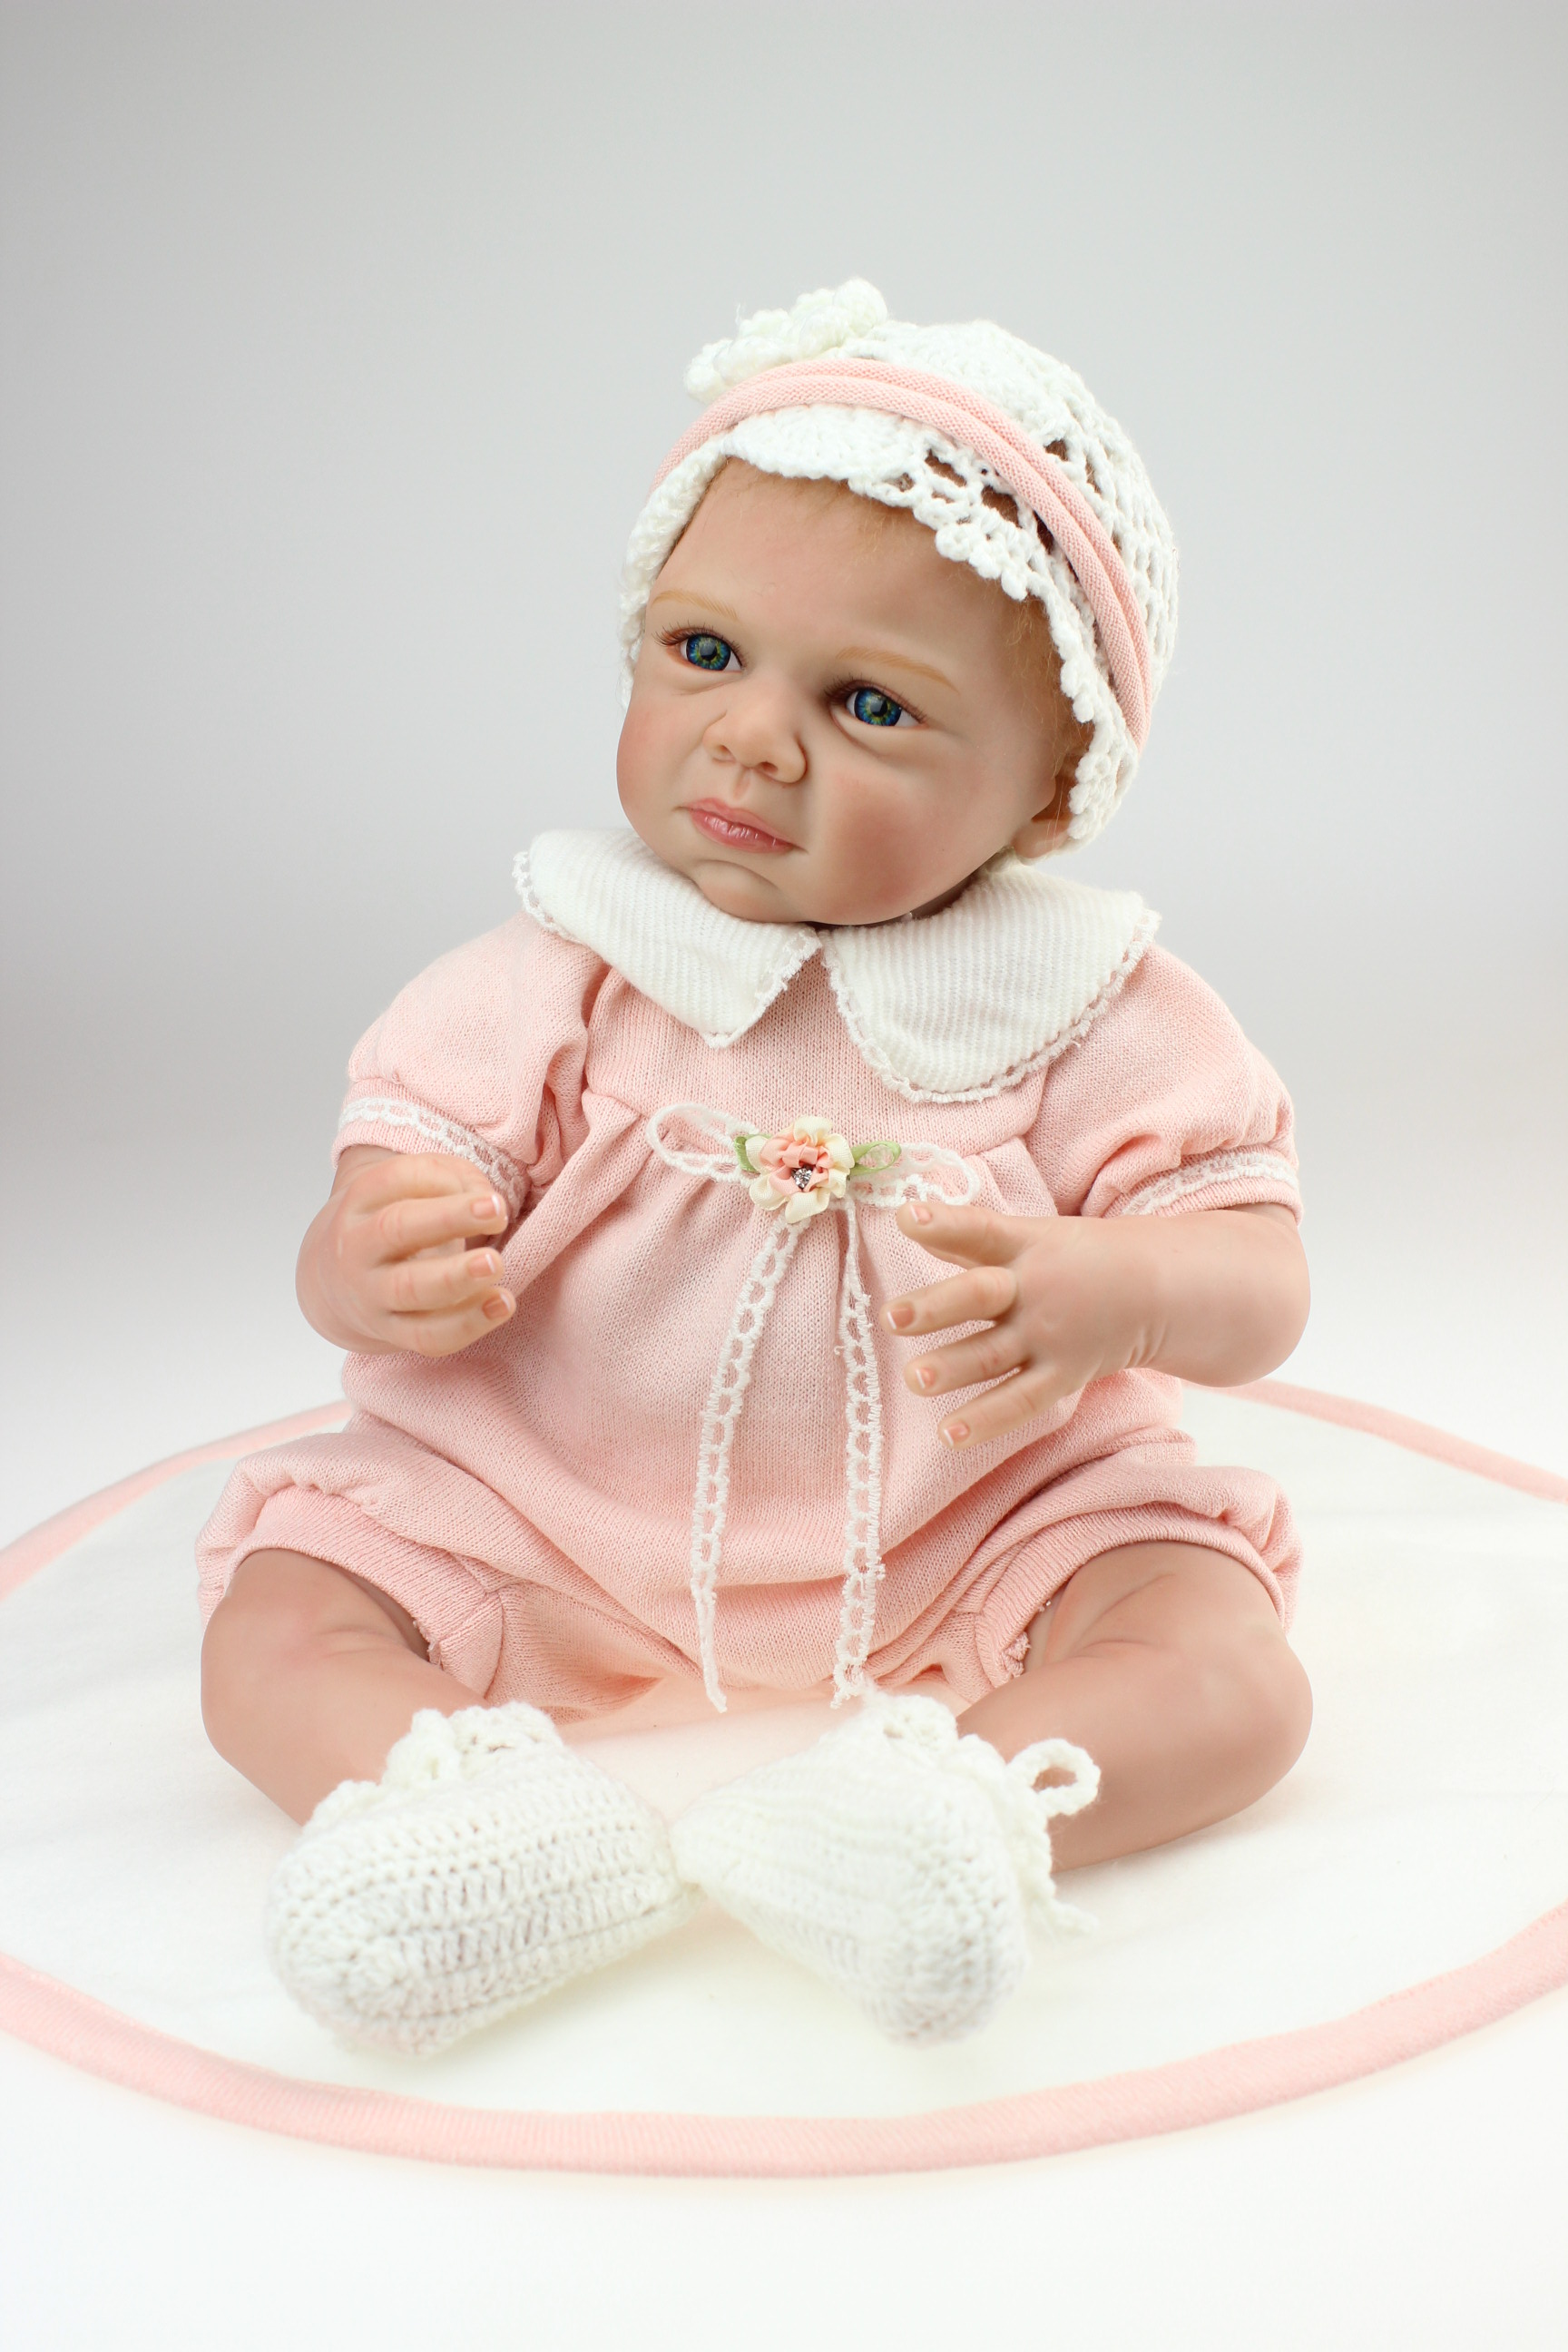 цена на 50CM Silicone Baby Reborn Dolls Lifelike Doll Reborn Babies Toys for Girl Pink Princess Gift Brinquedos Mothers Training Doll